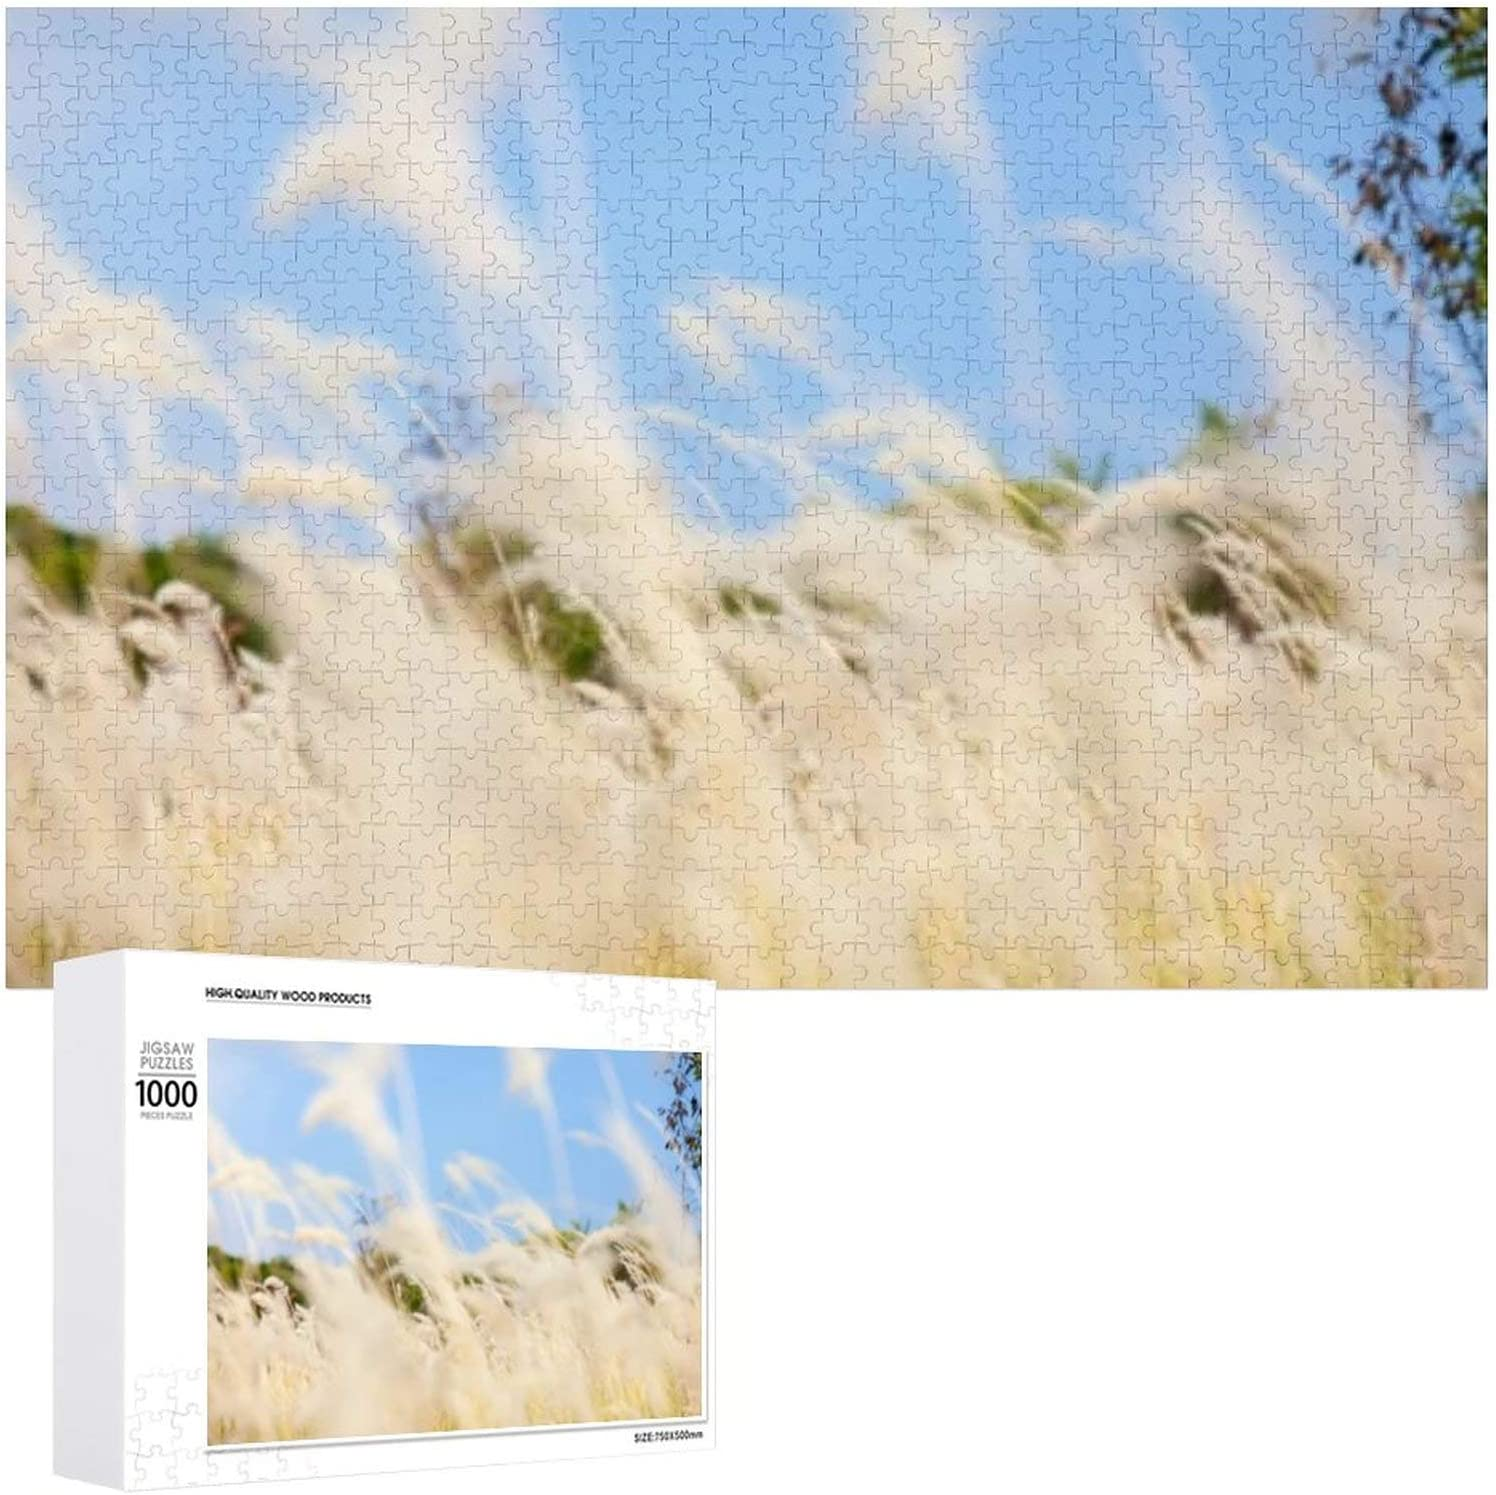 Blurred Elegant Flowers Grass White Field - for Puzzles Ranking TOP4 Jigsaw 1000 Adul